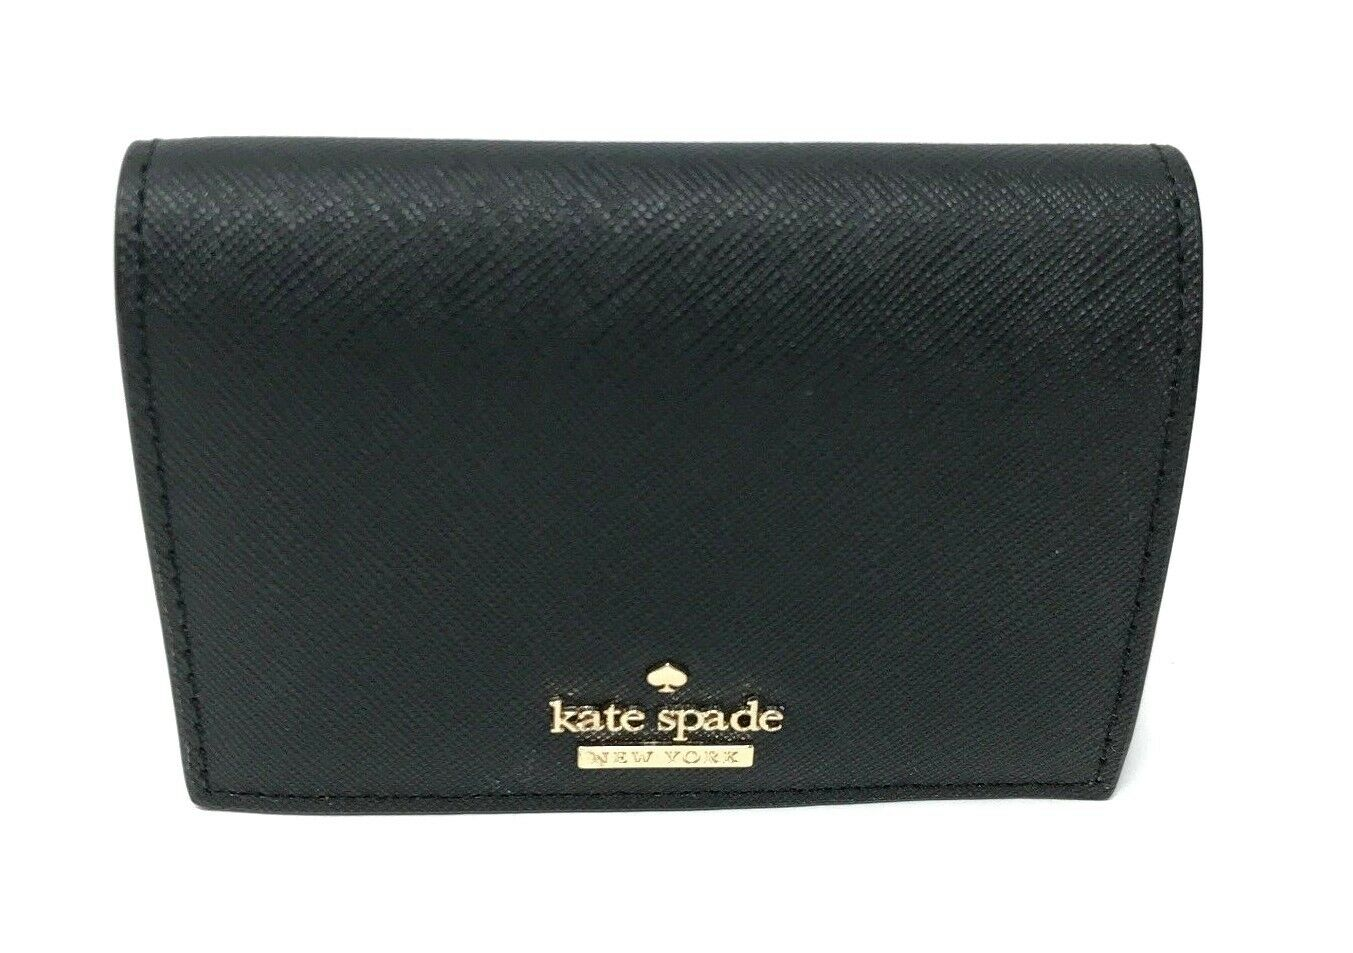 Kate Spade Cameron Street Annabella Black Leather Card Holder Wallet PWRU6516 $88